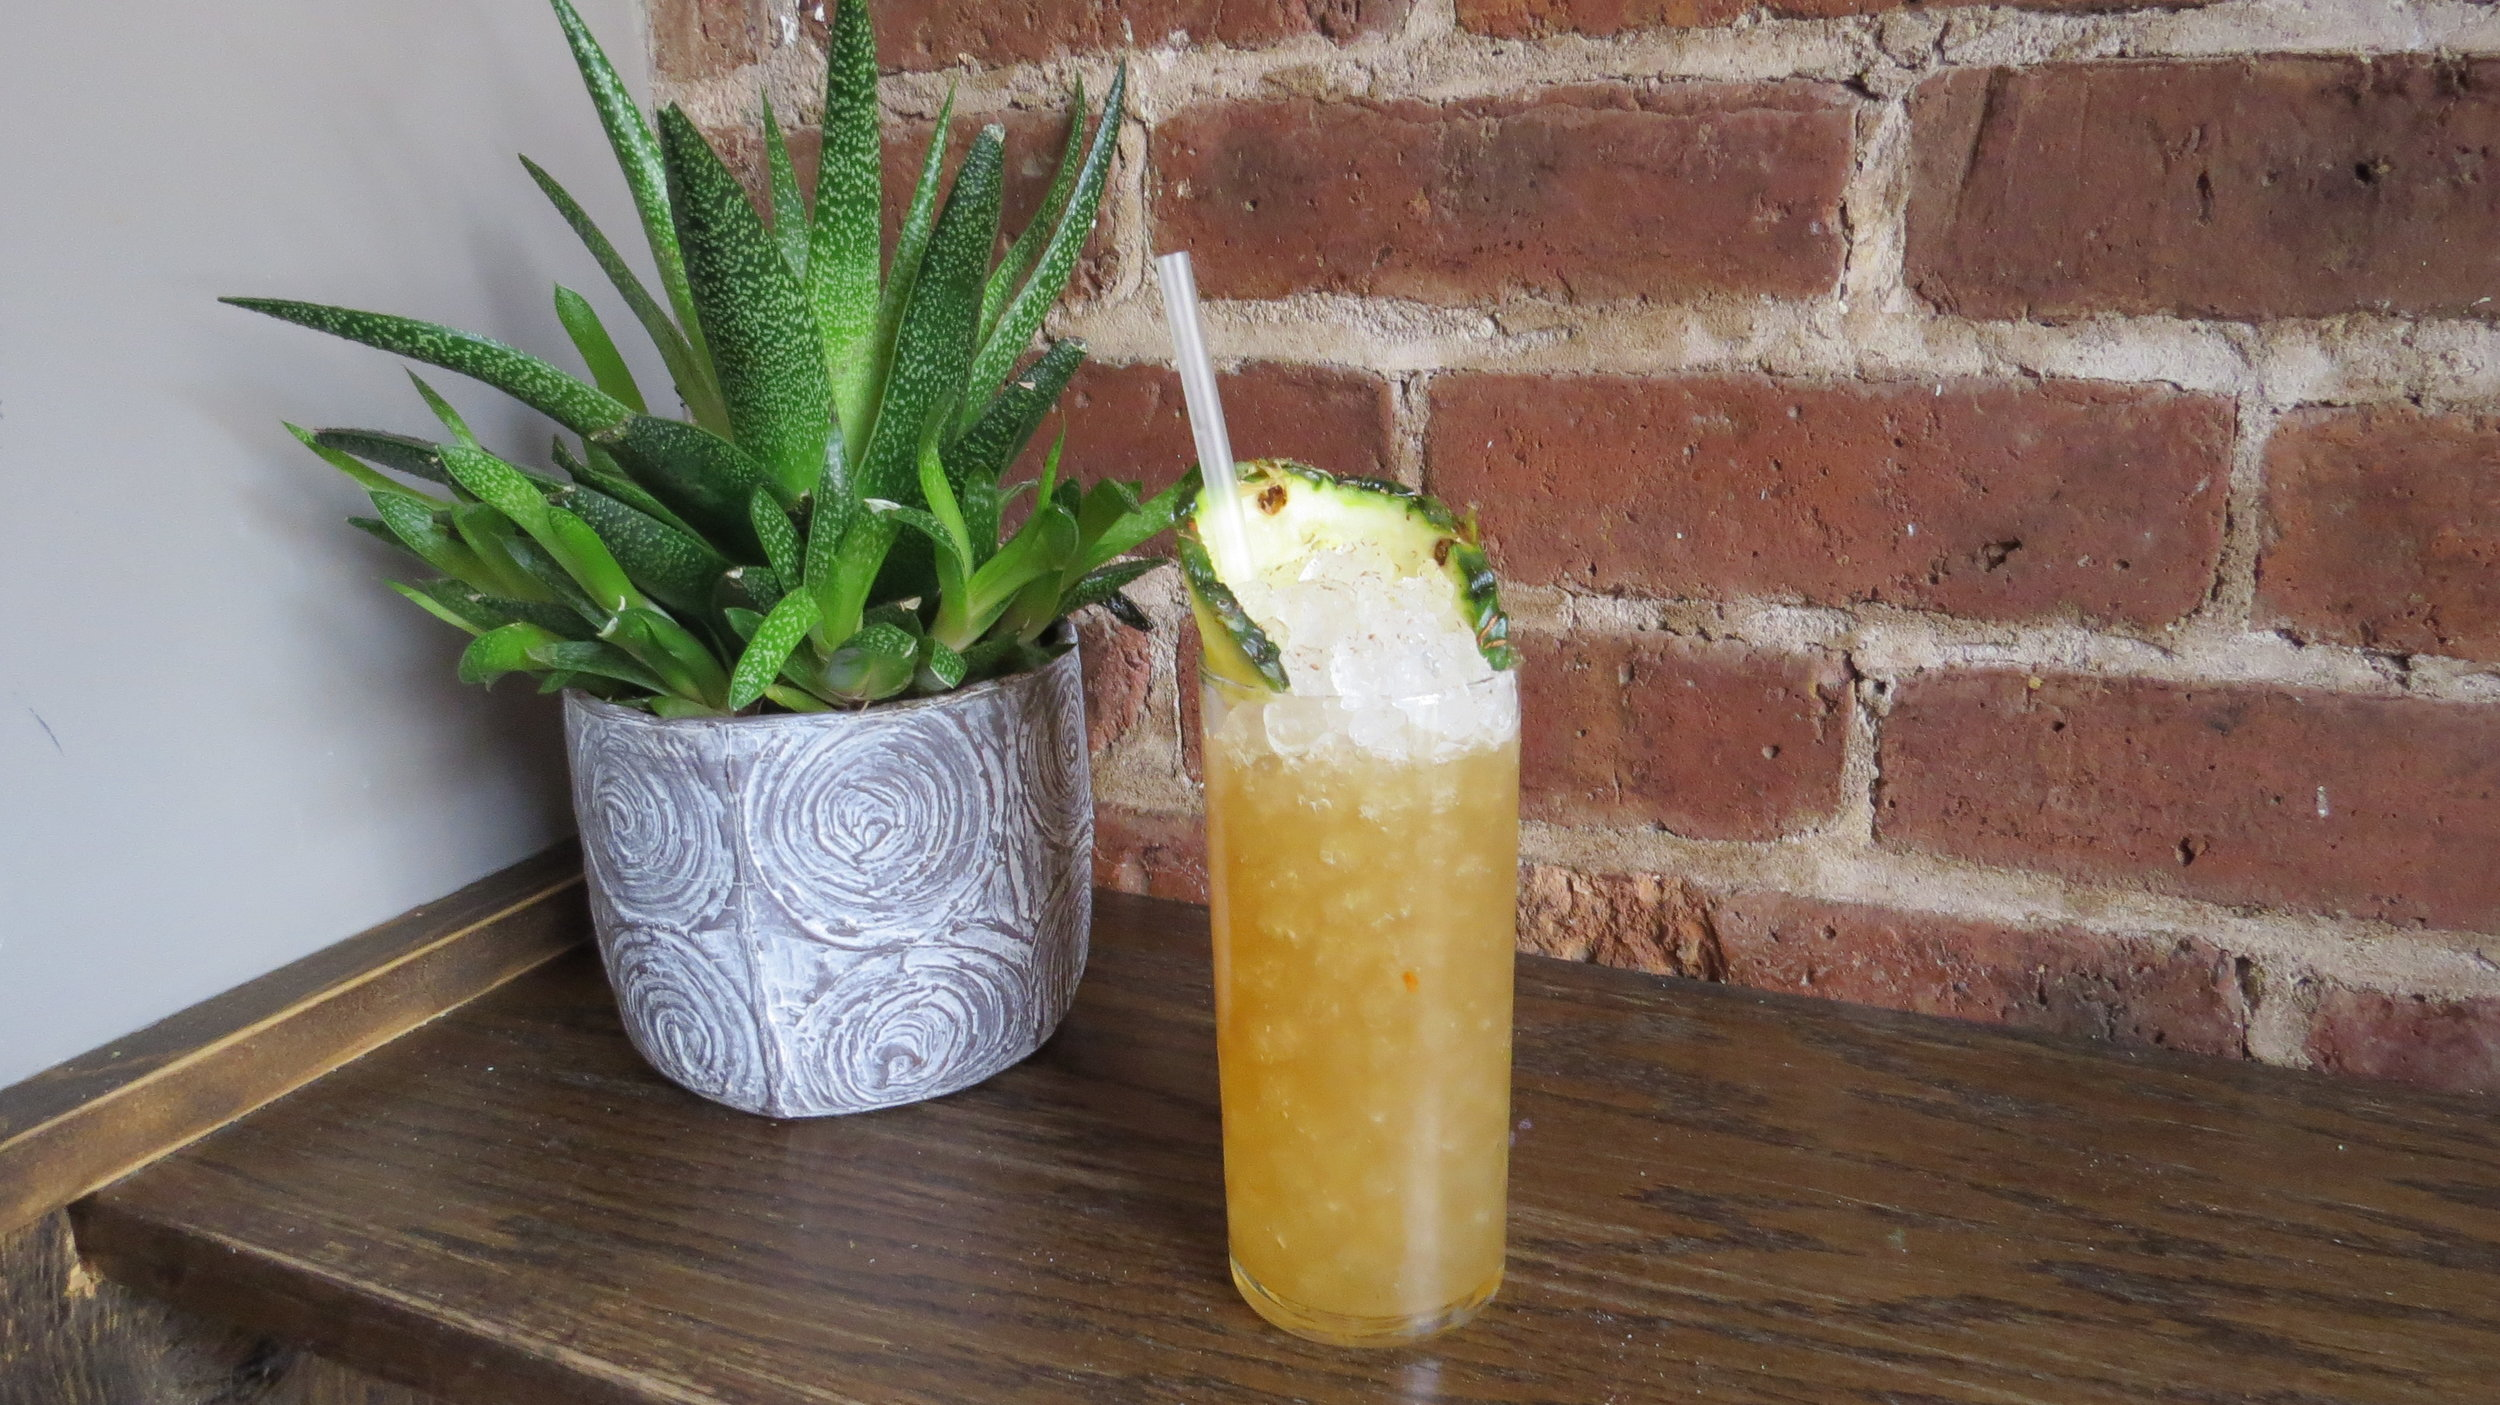 Photo was taken for 2017 book New York Cocktails at Leyenda, Brooklyn. They have since upgraded to bamboo straws!